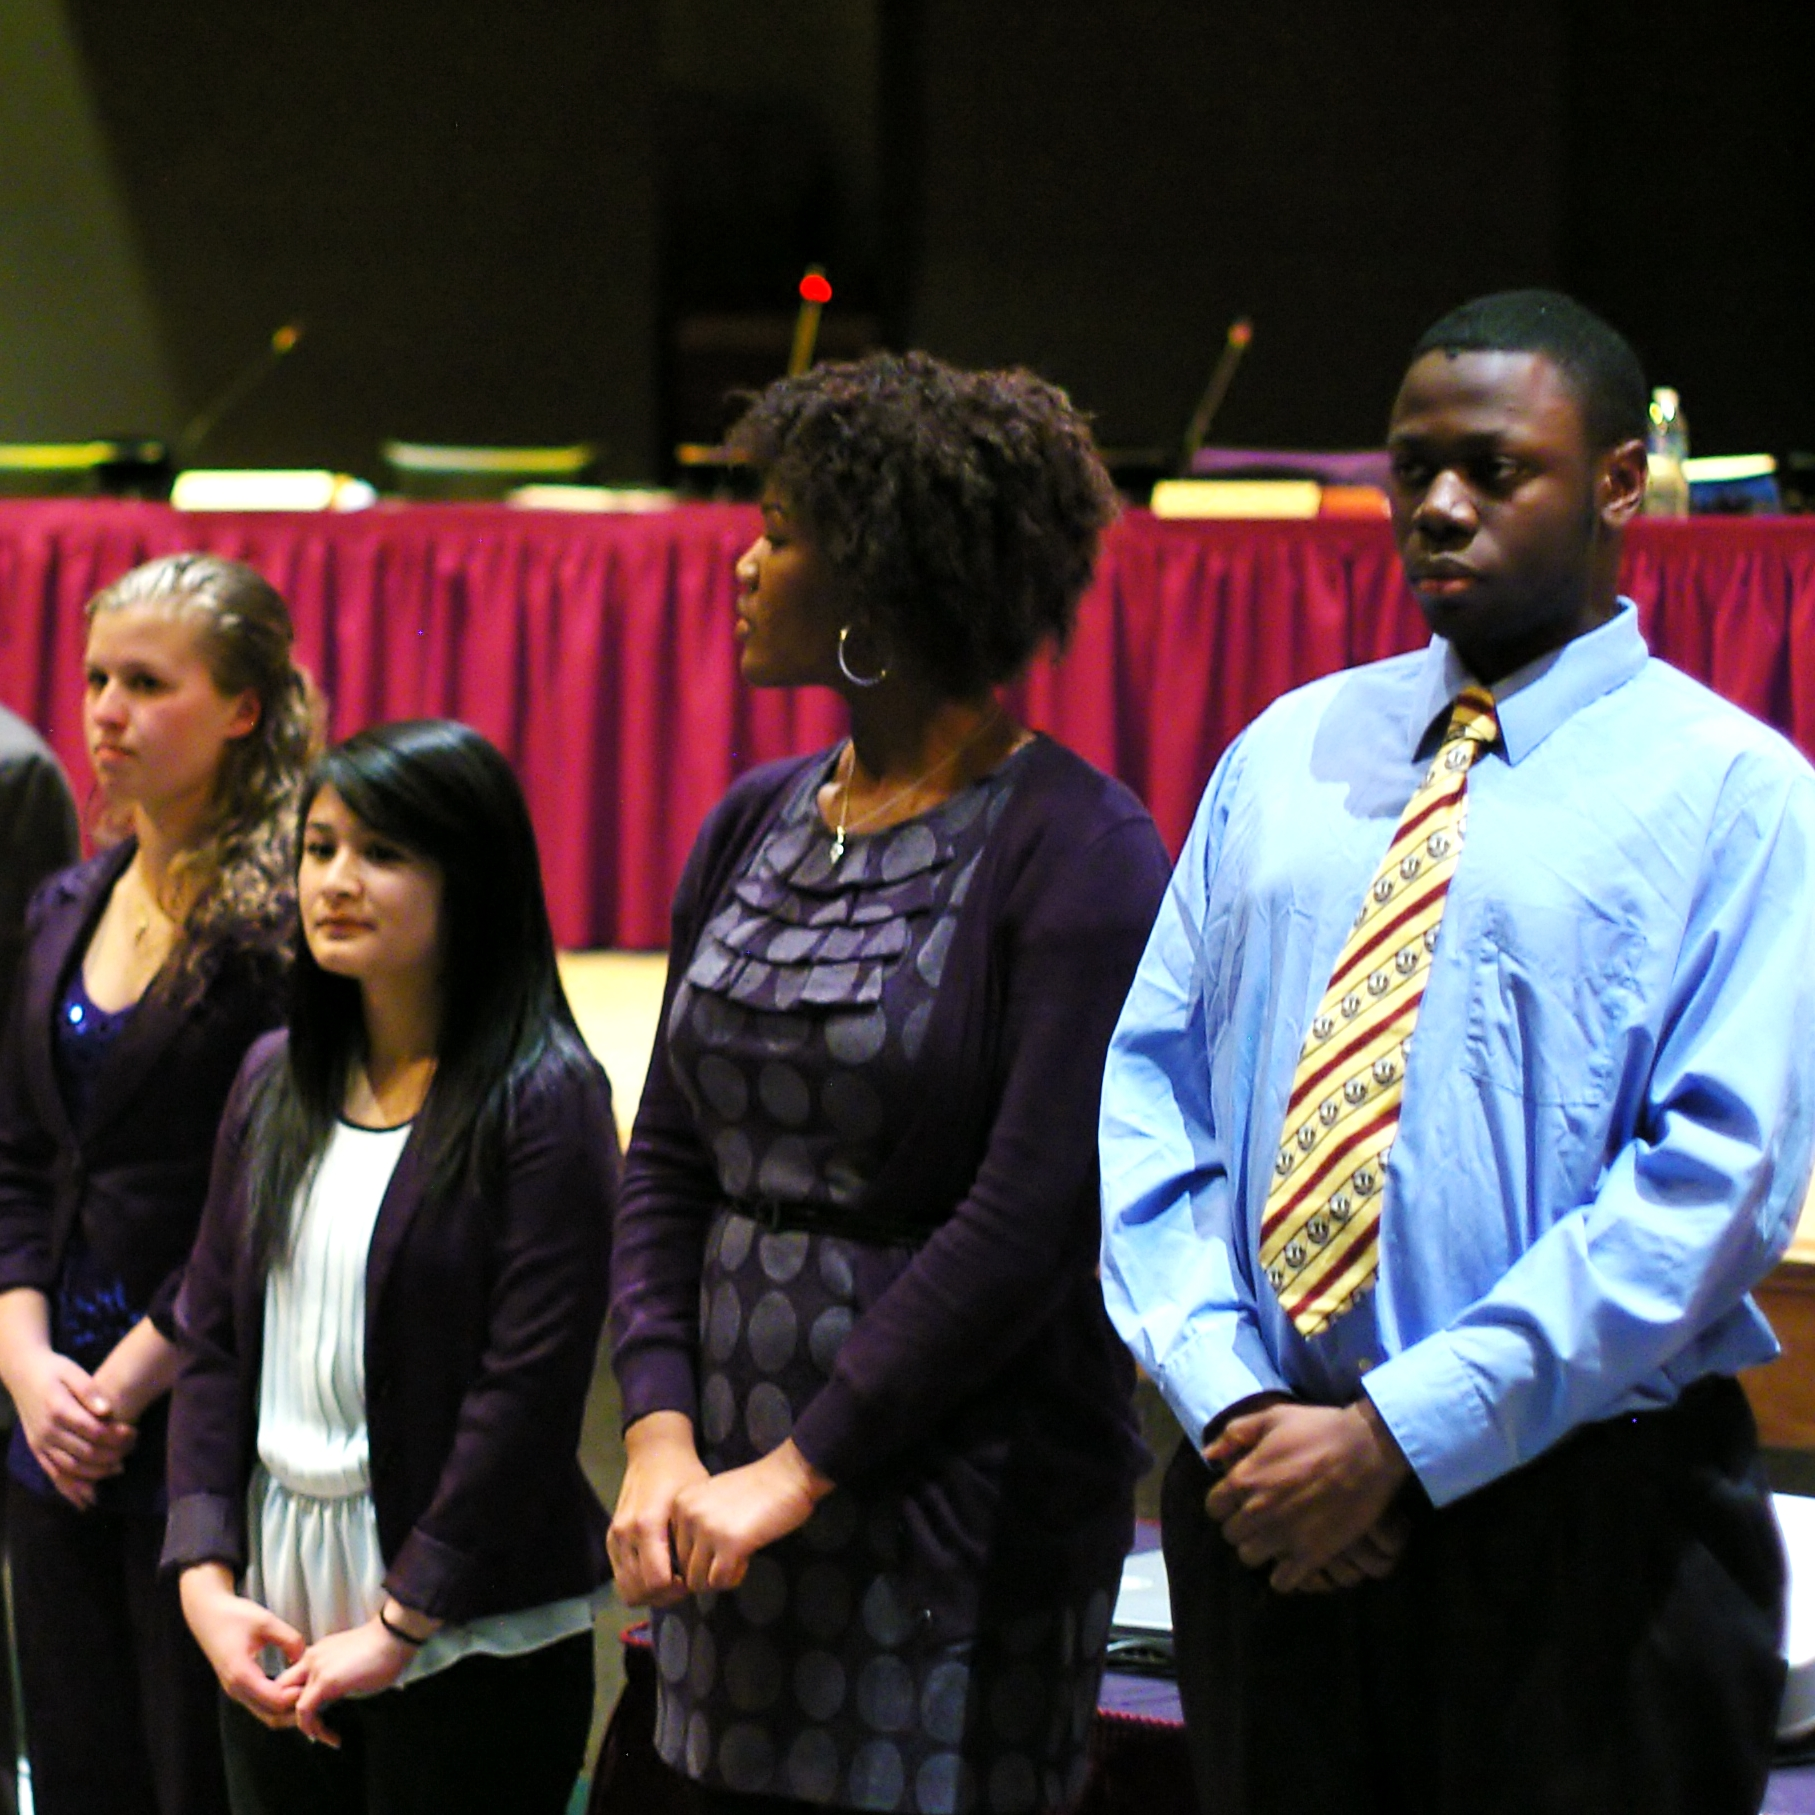 (left to right) Nicolina Sciarretta, Johnna Morales, Gabrielle Hines, and Joshua Mensah stand before the audience as Mr. Fisher recognizes them as some of the top students in their class.